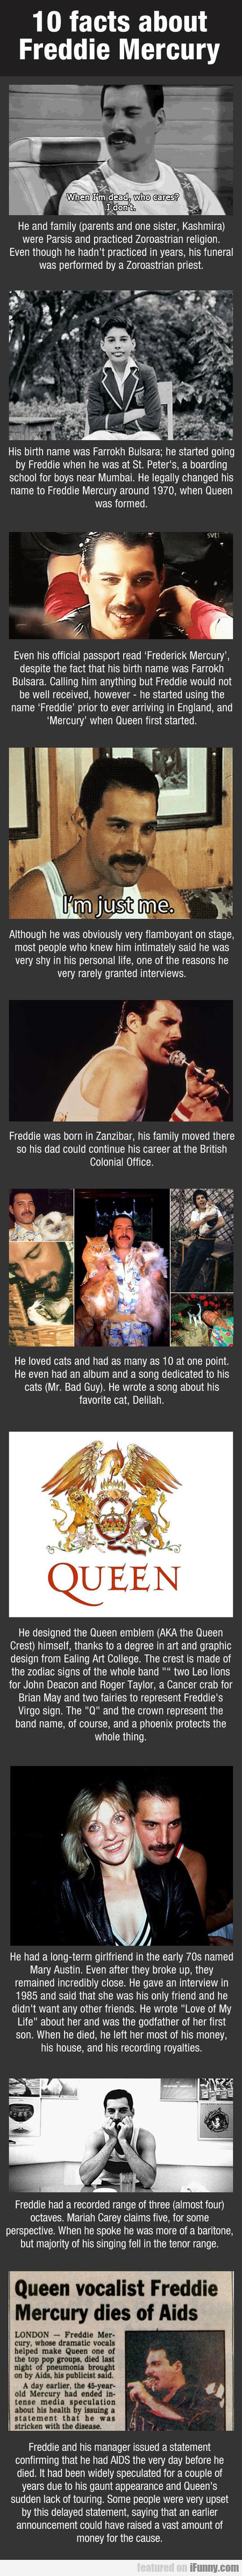 10 Facts About Freddie Mercury